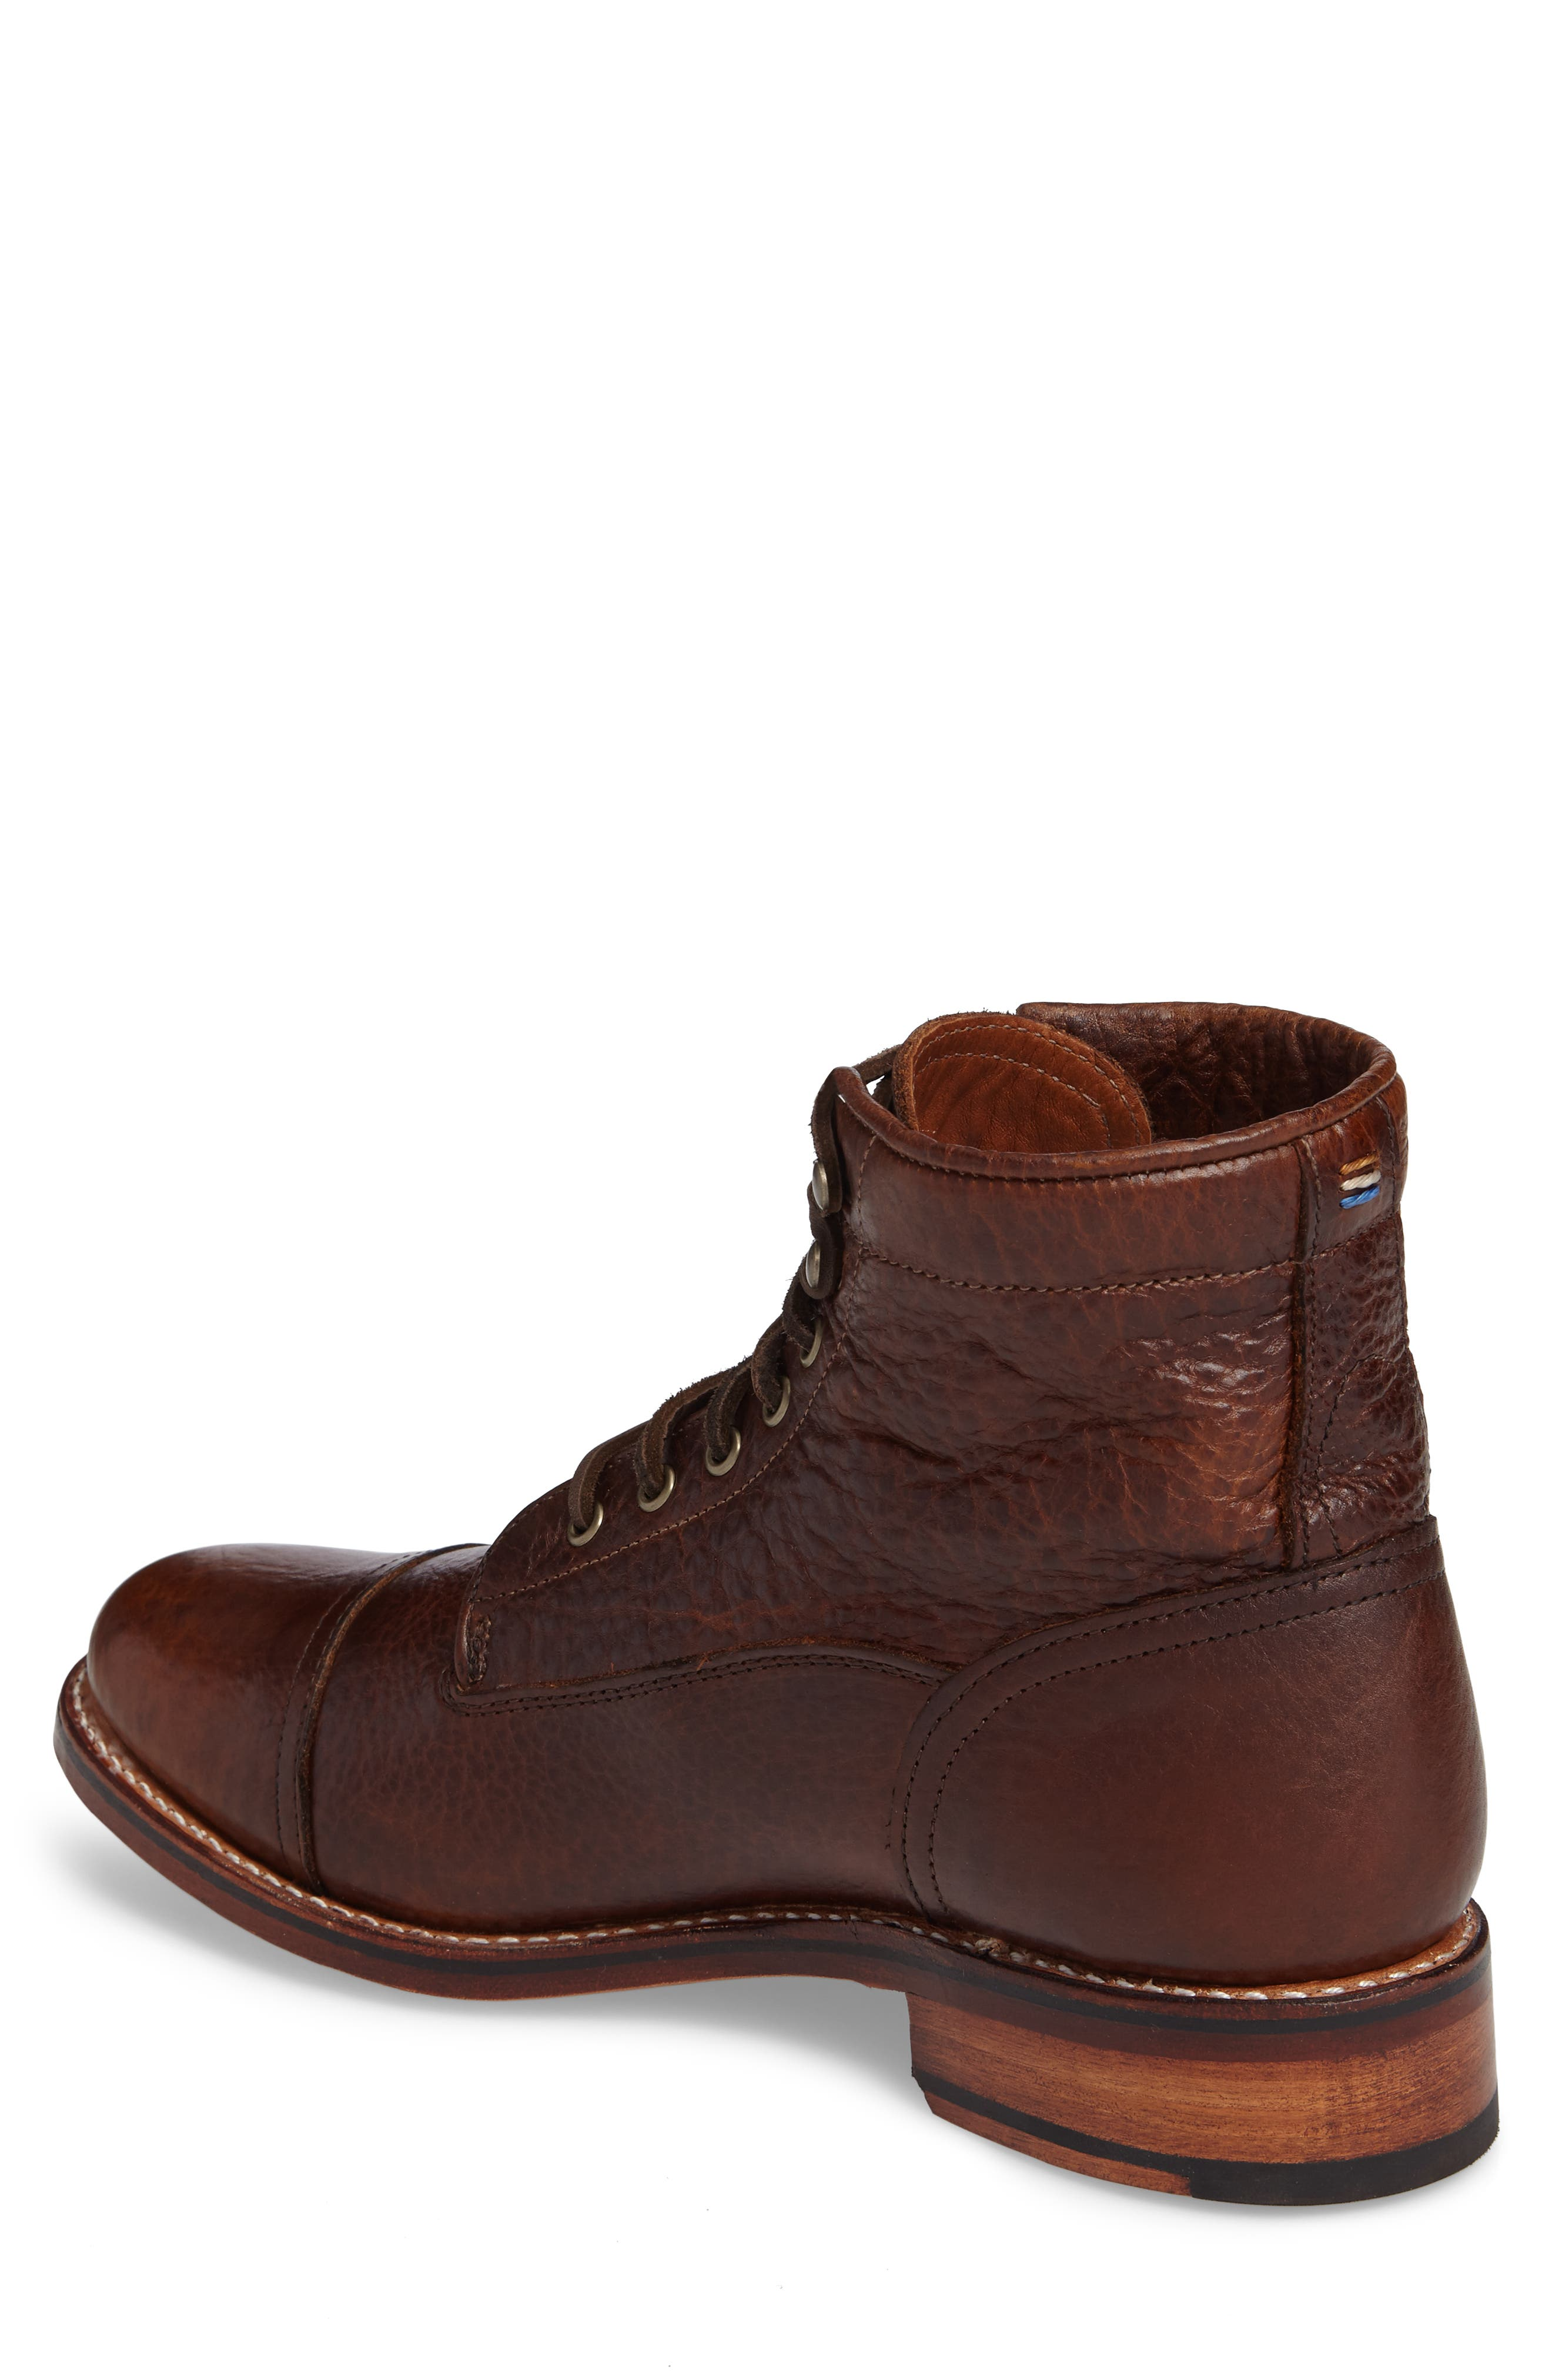 Ariat Highlands Cap Toe Boot,                             Alternate thumbnail 2, color,                             Whiskey Bourbon Leather